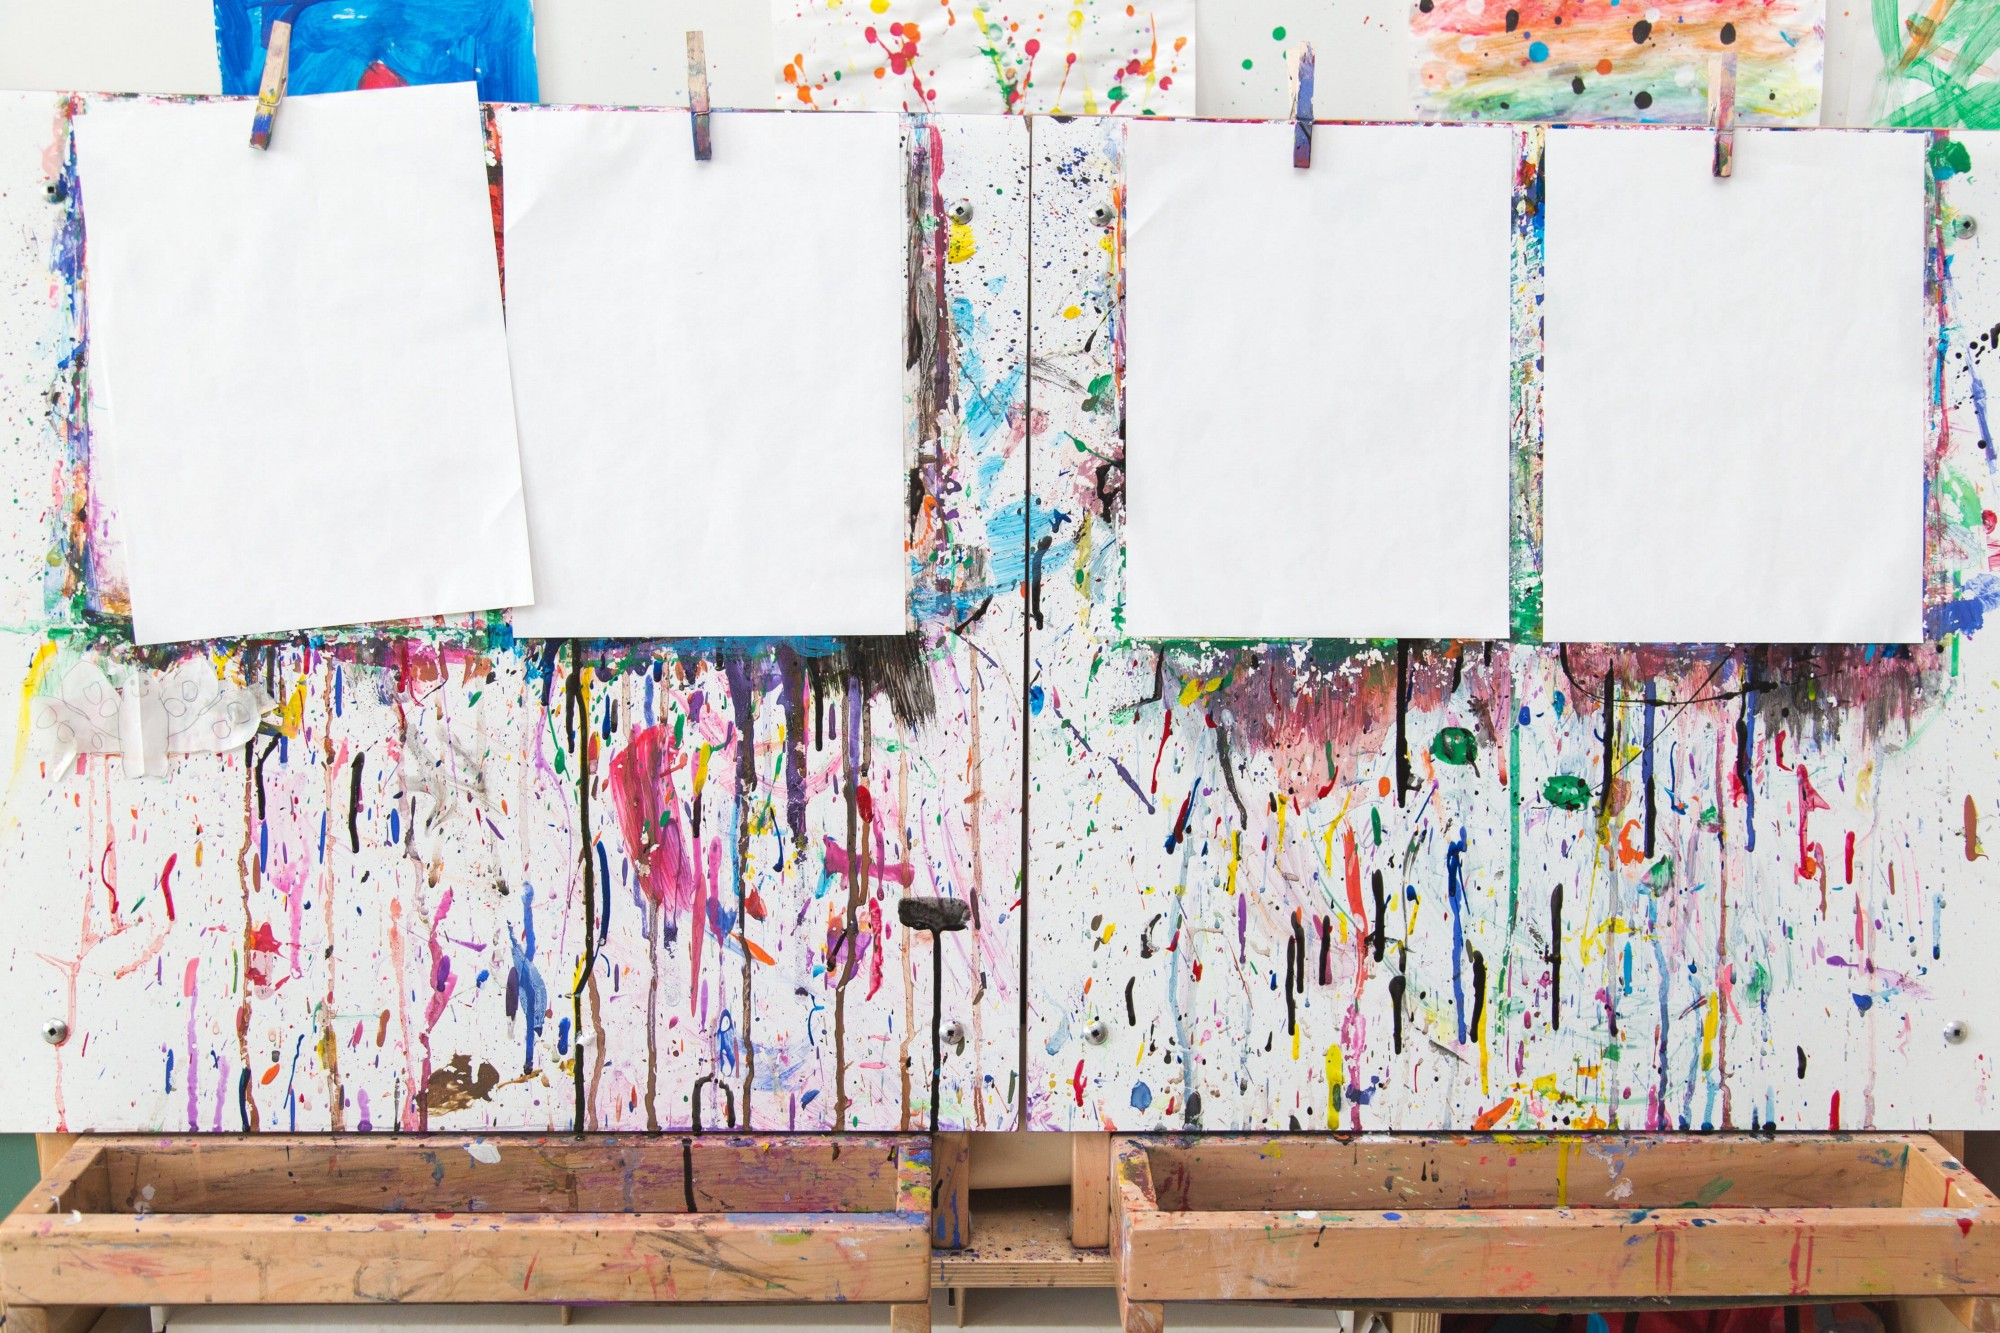 Four blank pages hang on paint covered easels in an elementary school classroom.